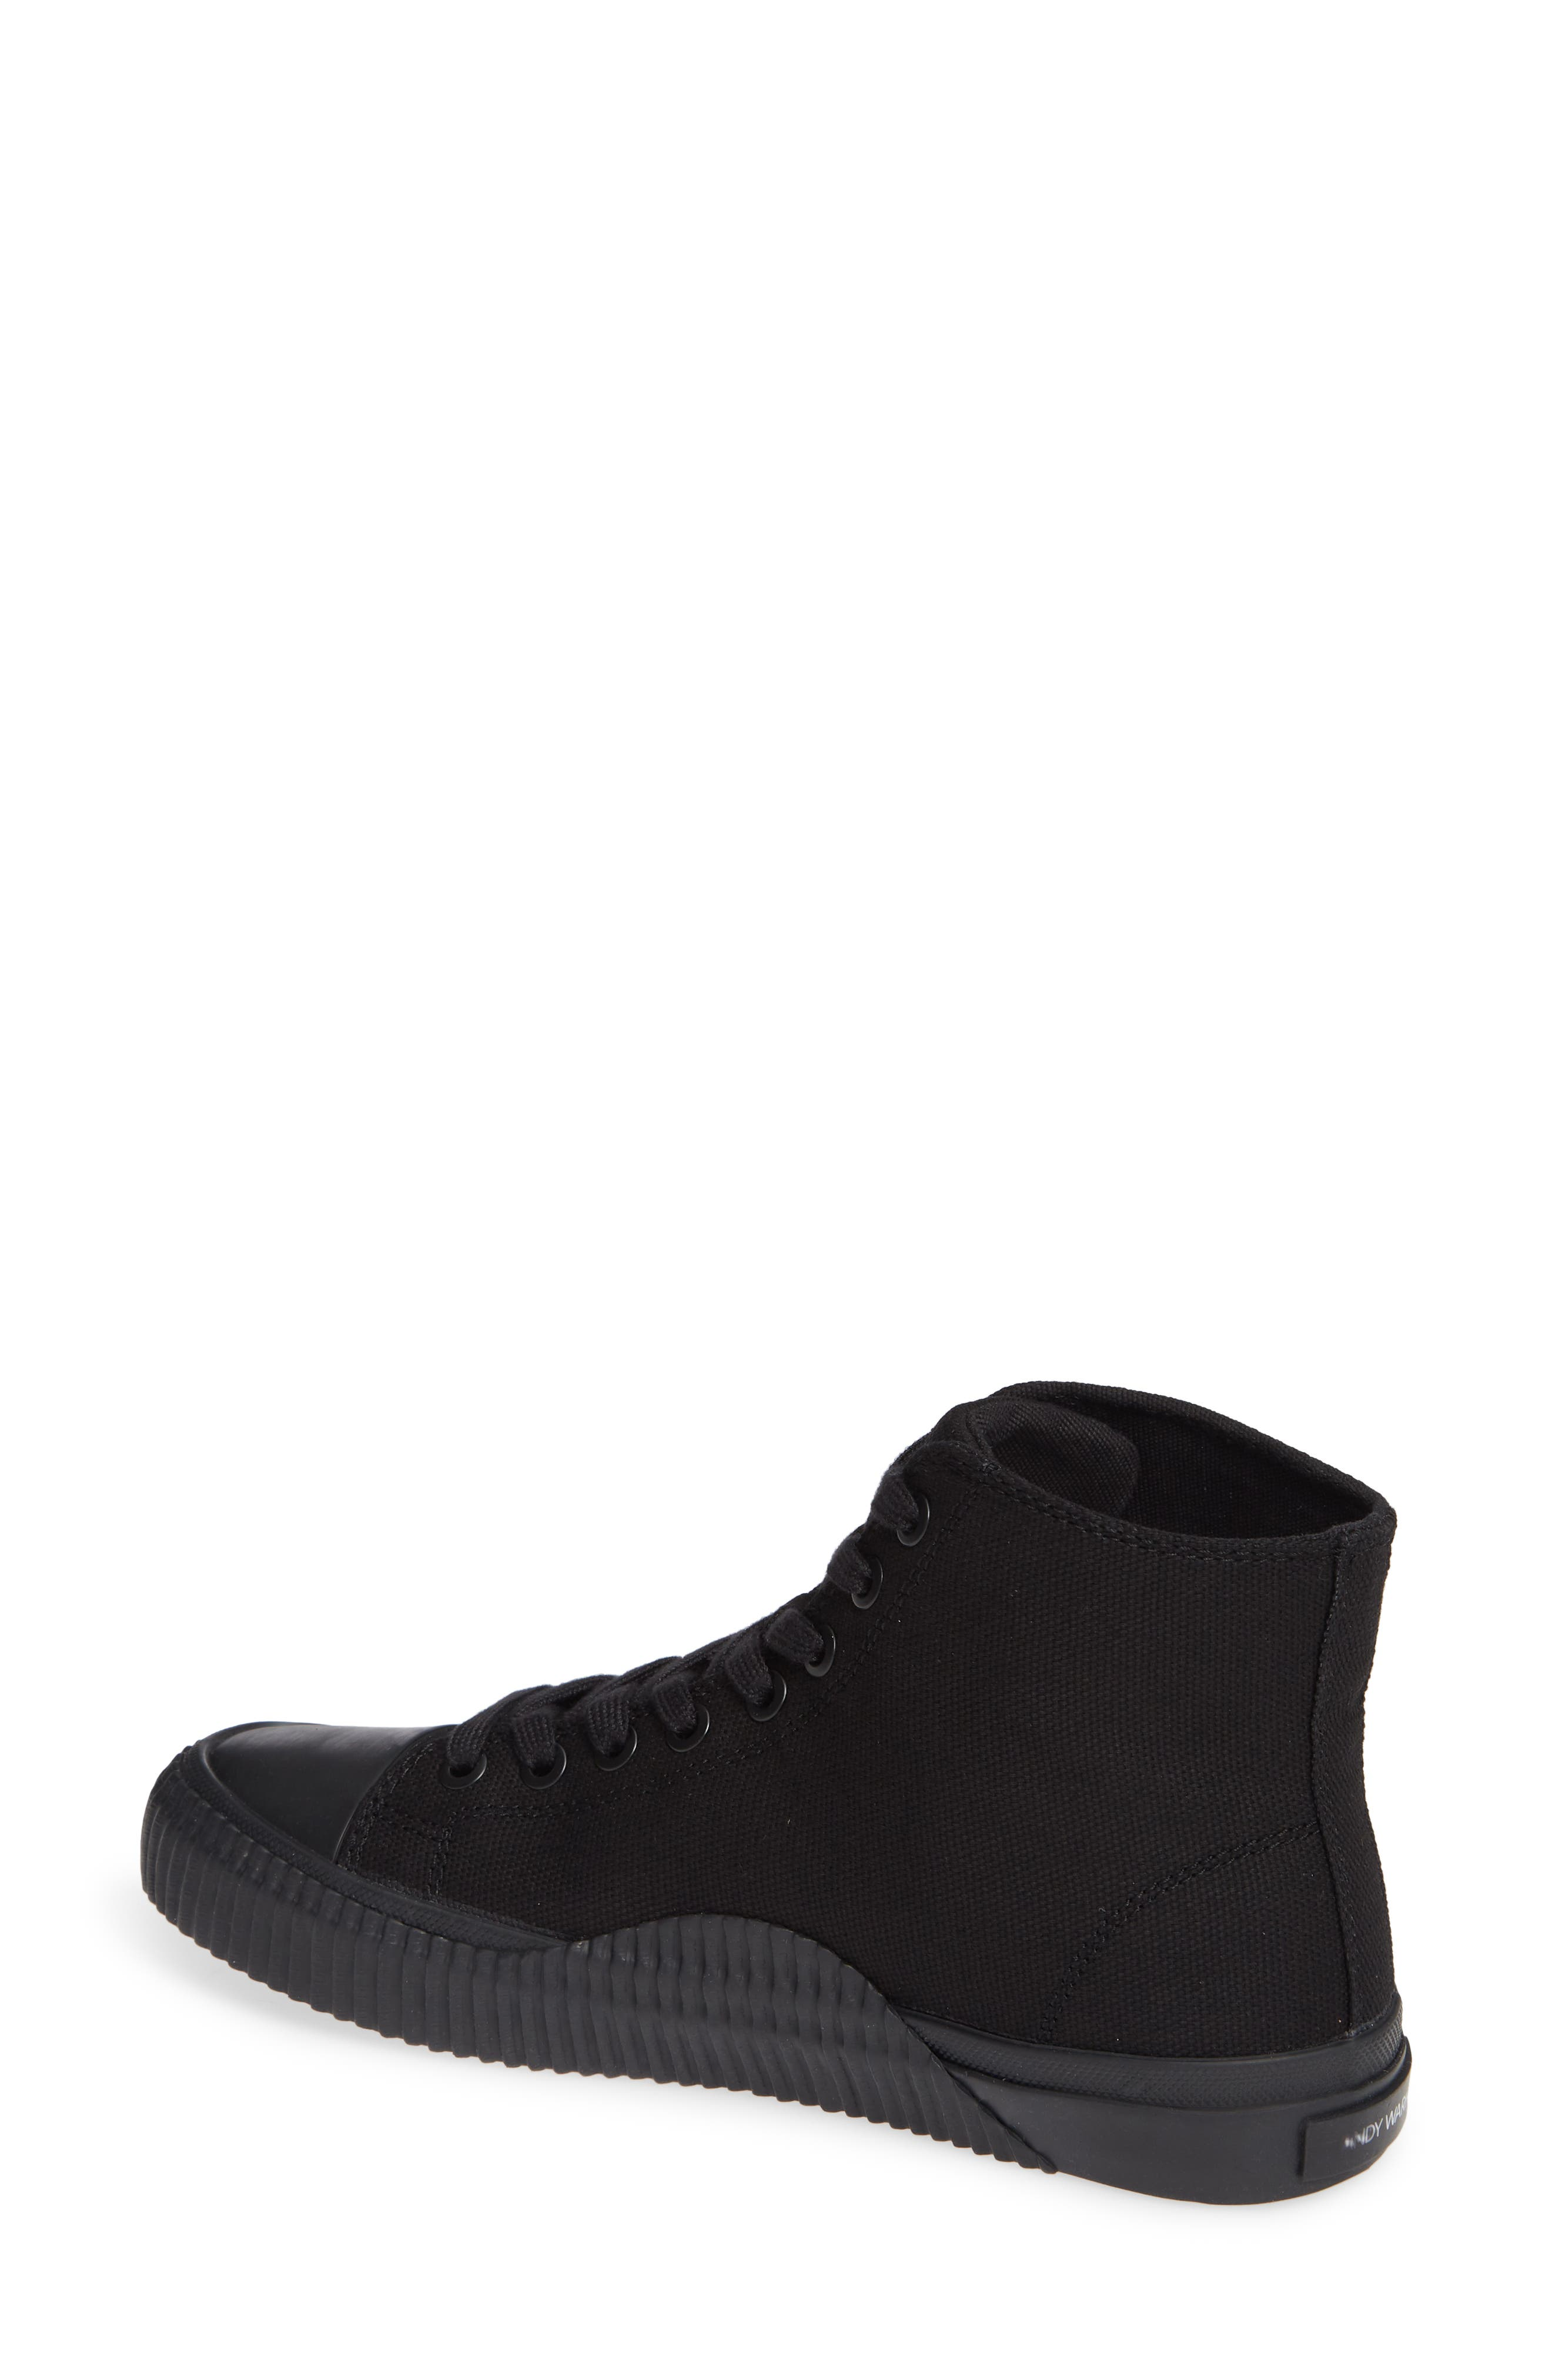 Iconica High Top Sneaker,                             Alternate thumbnail 2, color,                             BLACK/ PURPLE